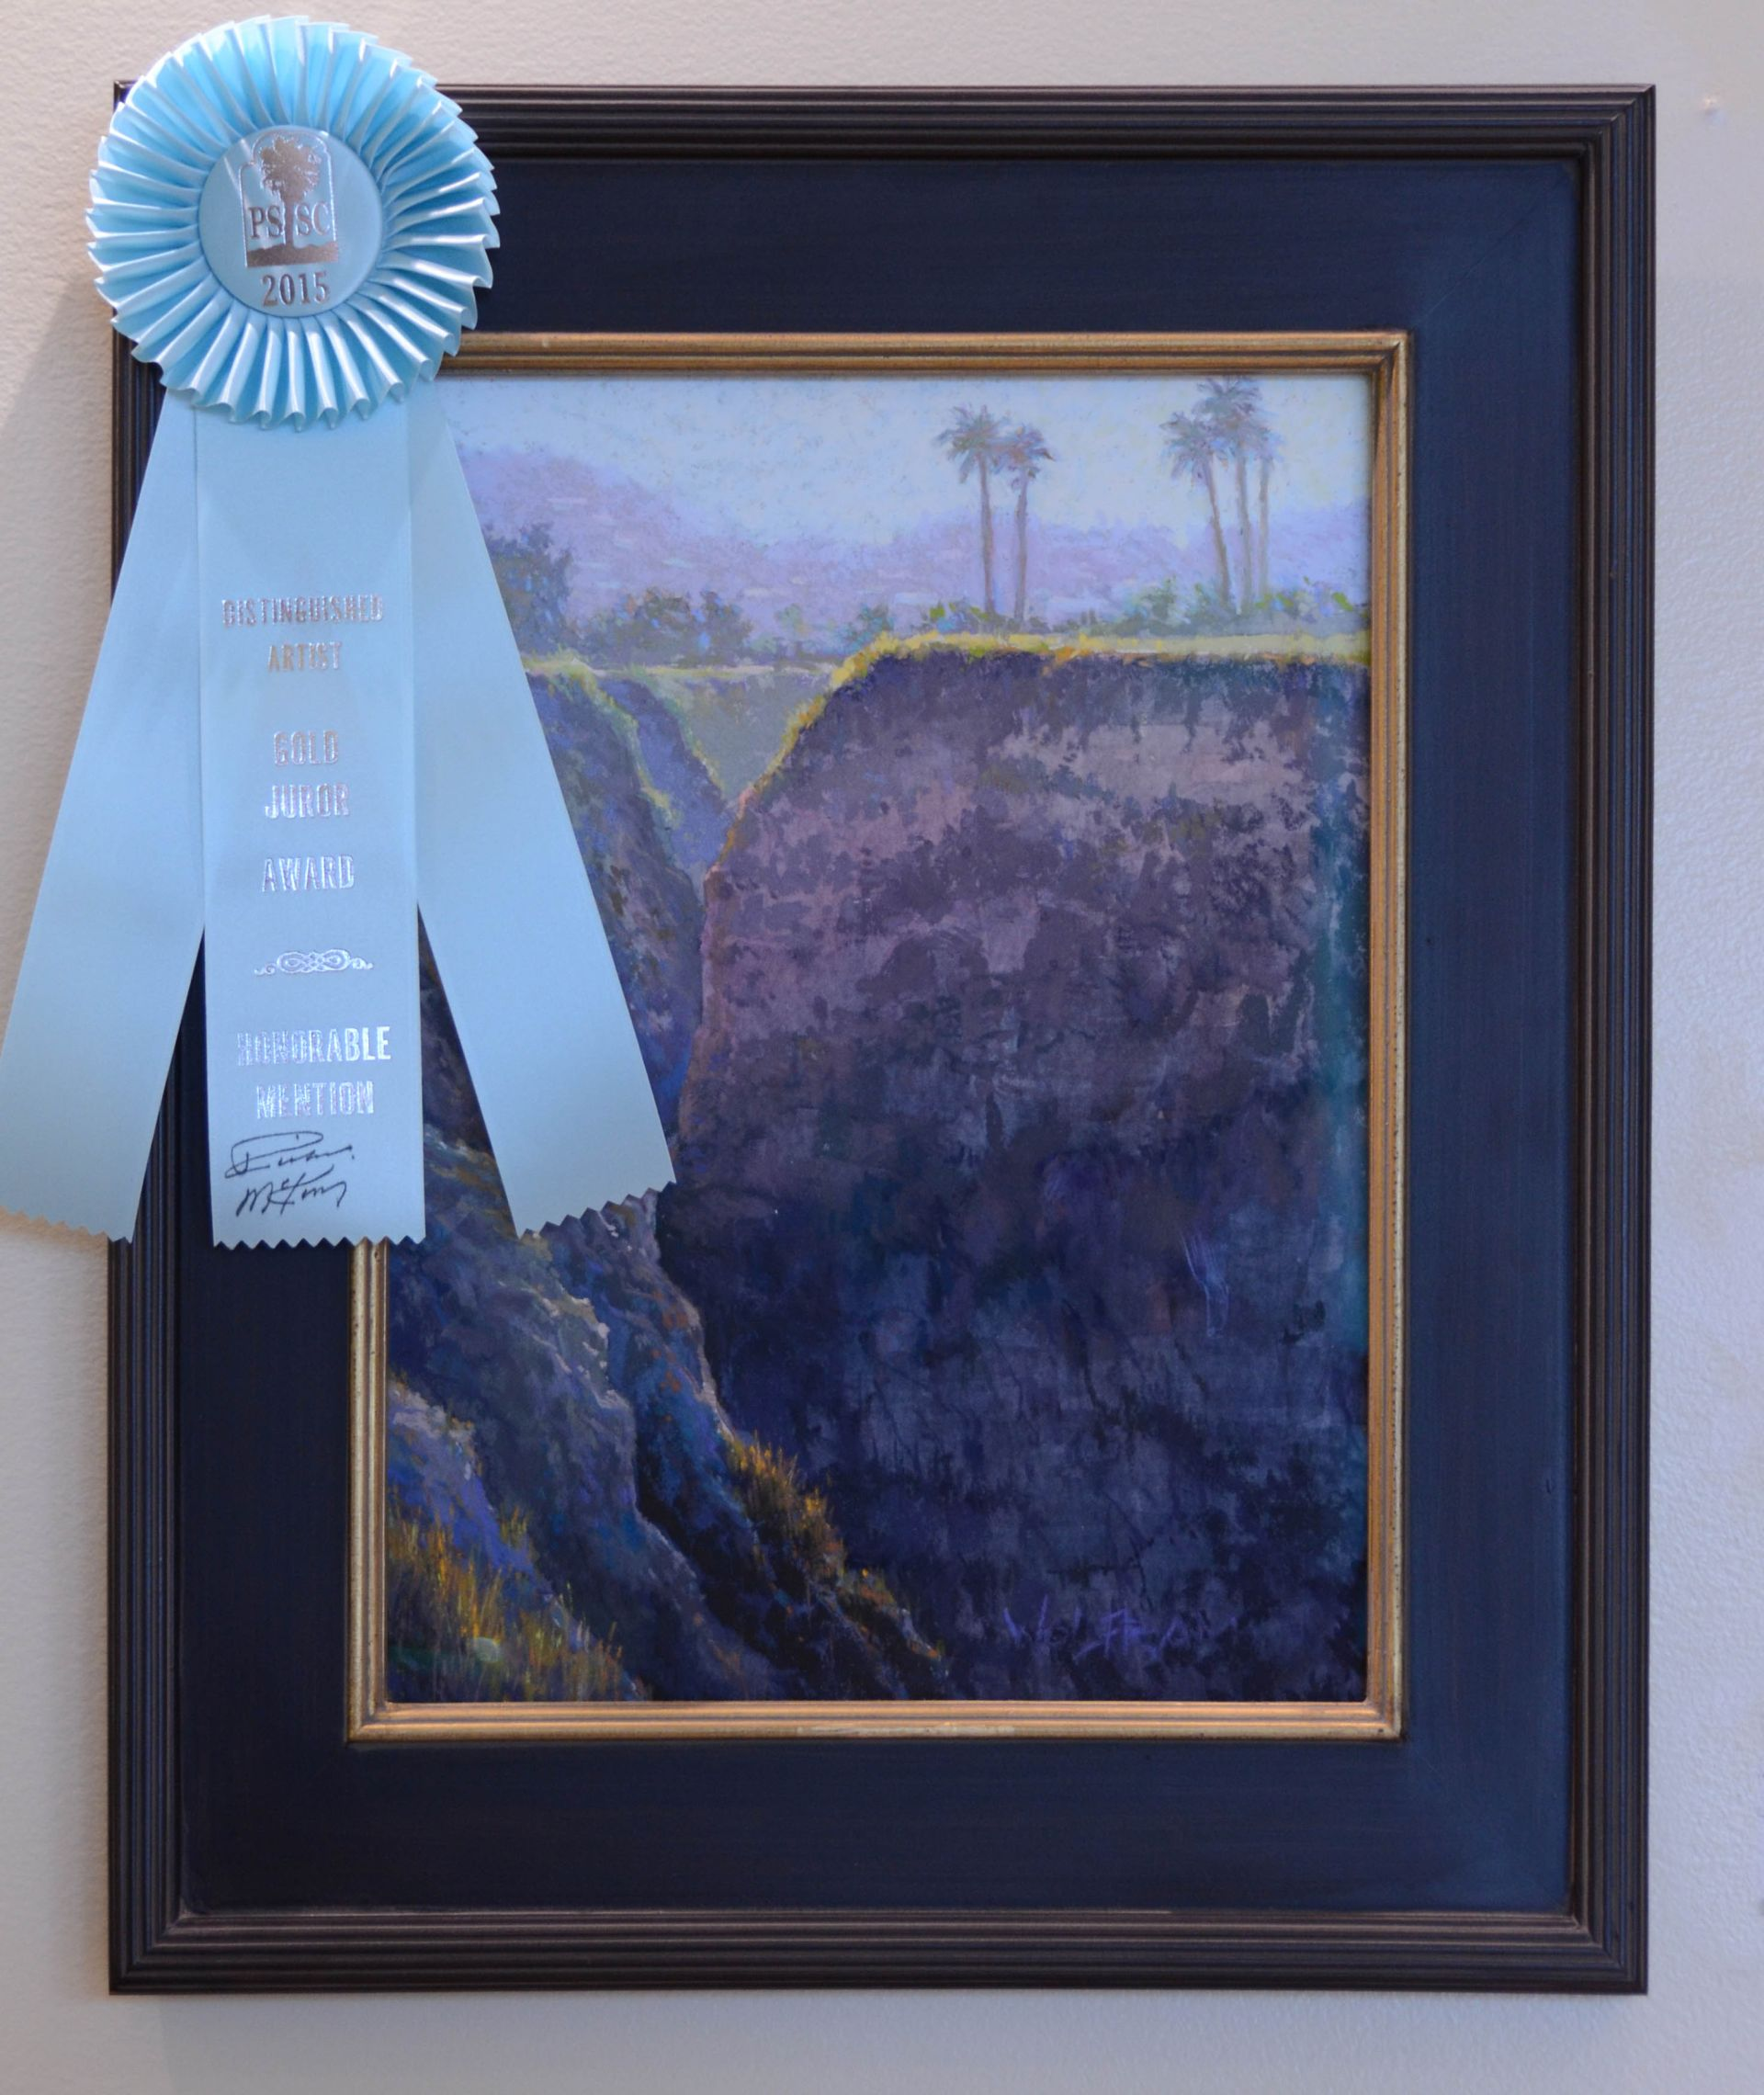 GOLD Category - Honorable Mention